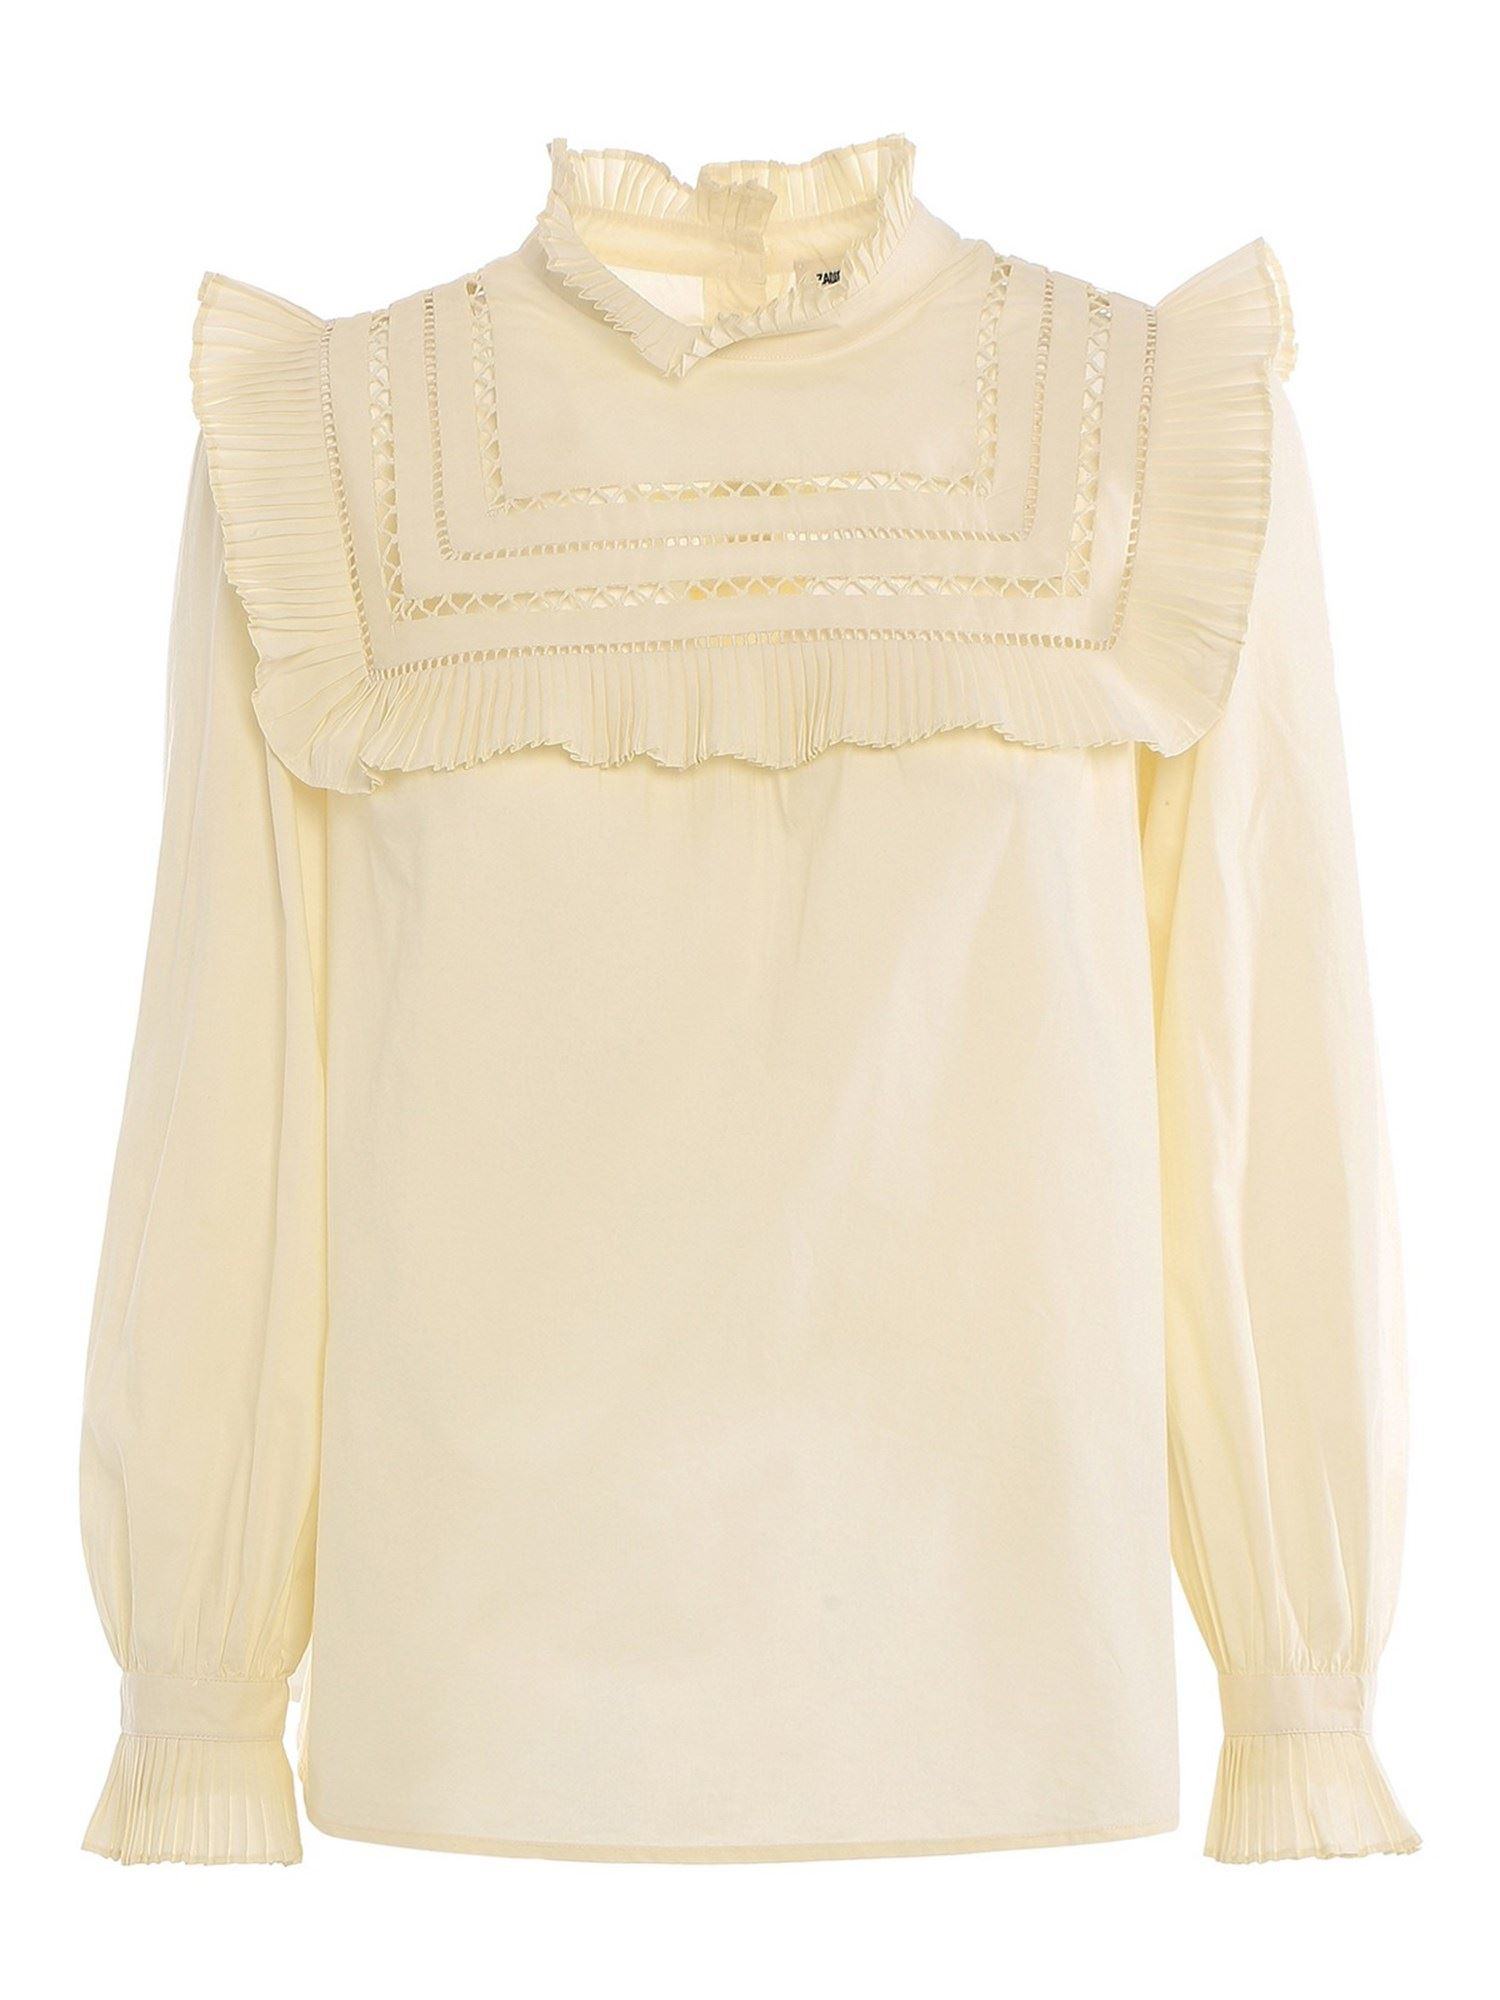 Zadig & Voltaire HIGH NECK BLOUSE IN CREAM COLOR